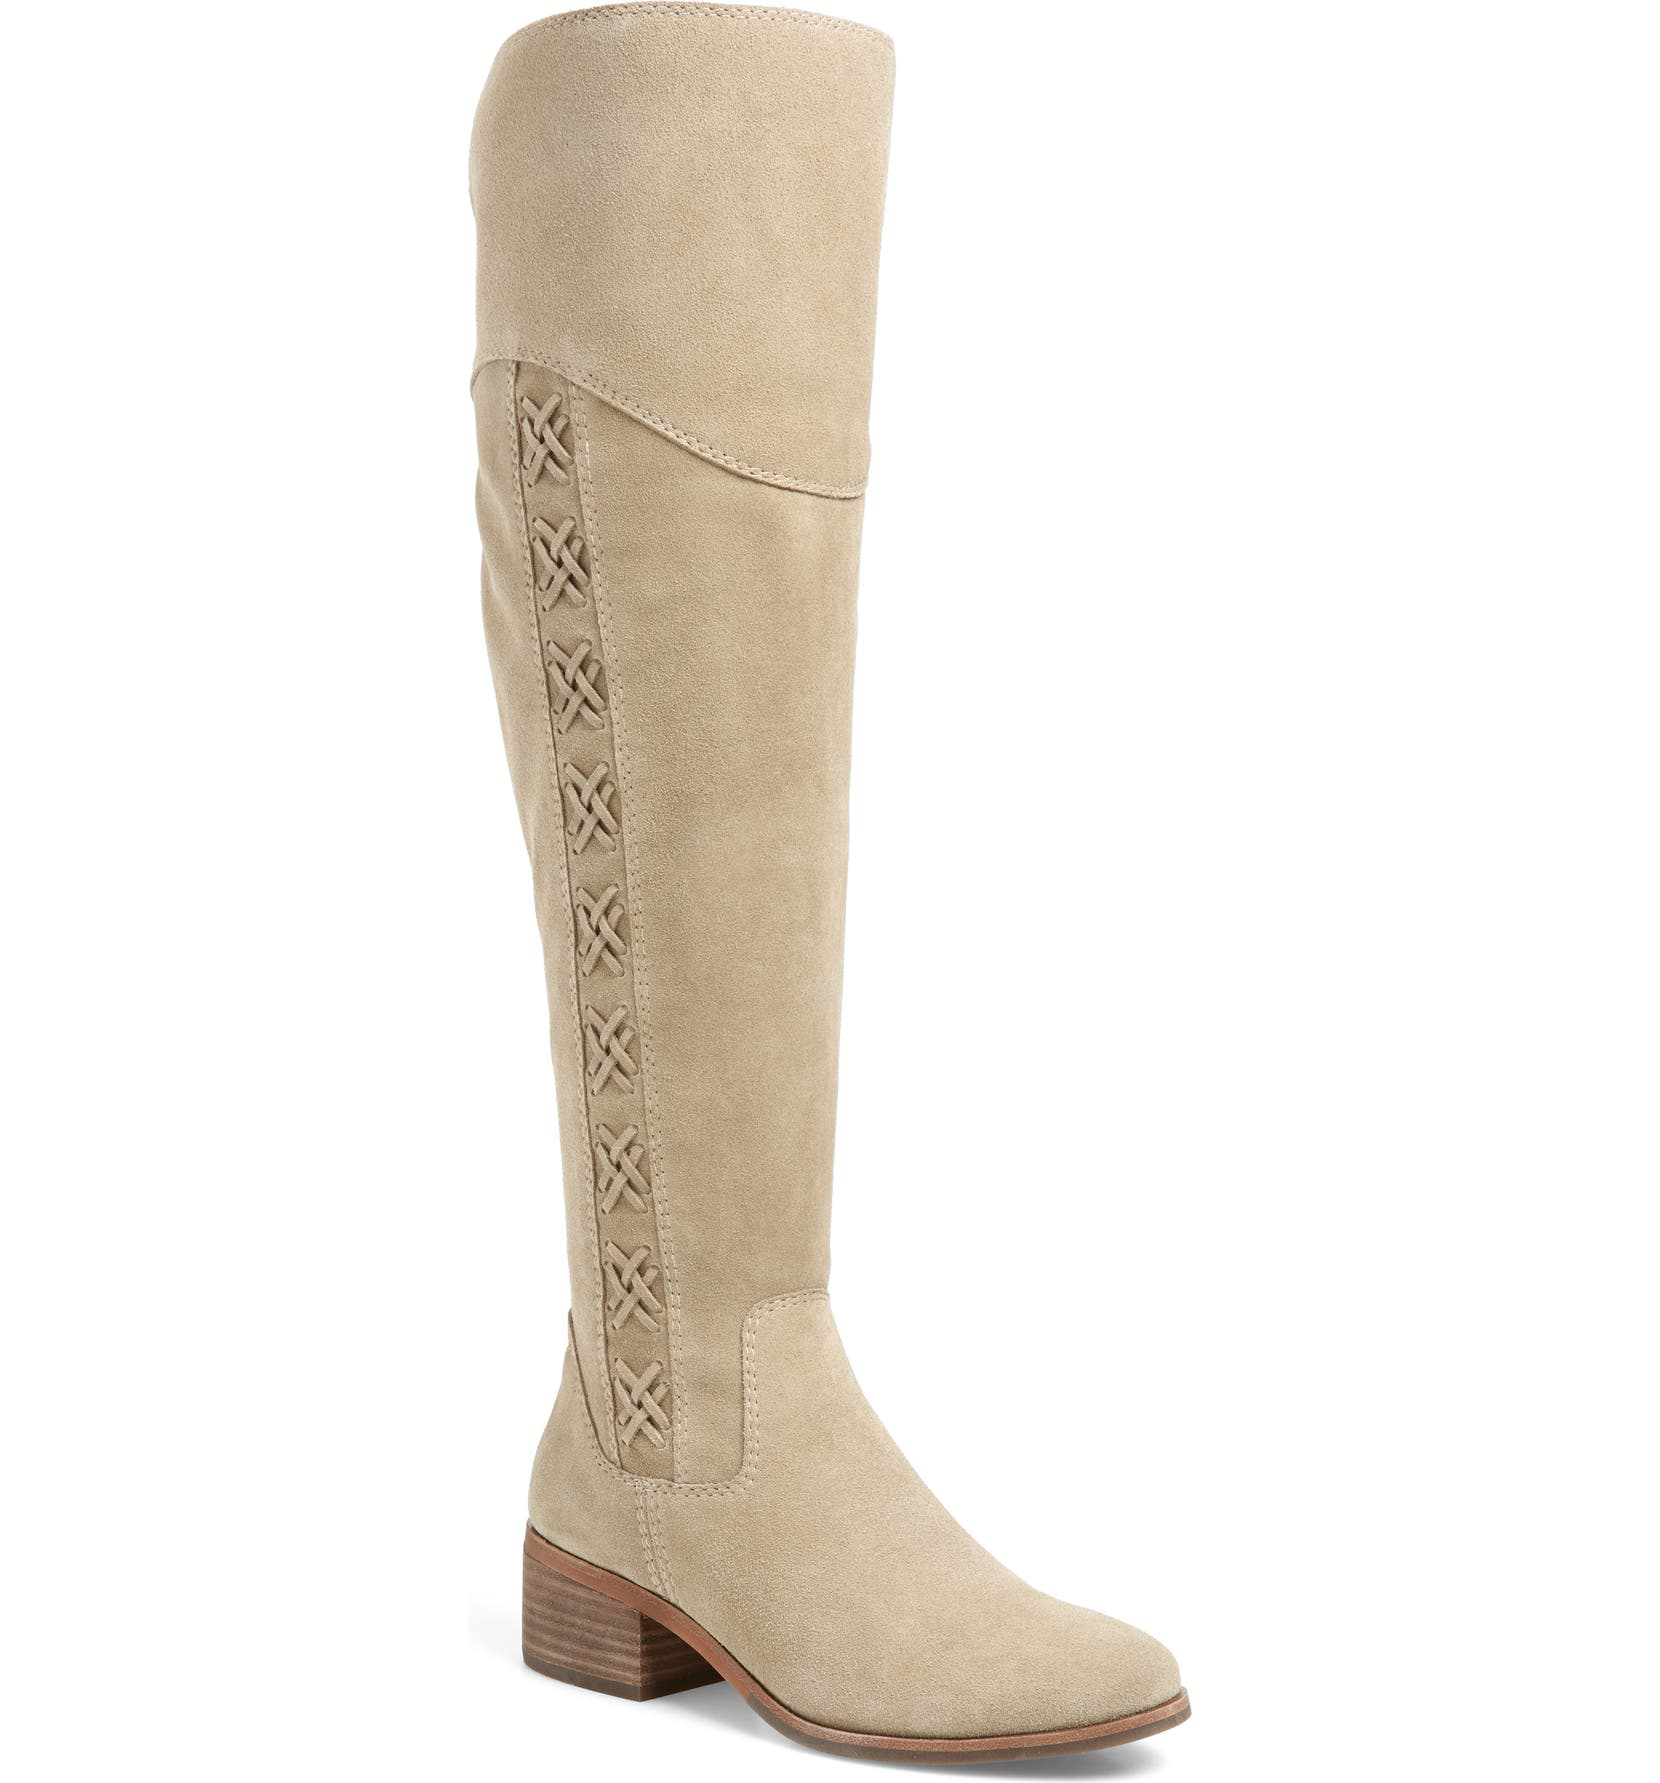 VINCE CAMUTO Kreesell Knee High Boot, Main, color, TAUPE NOTCH SUEDE